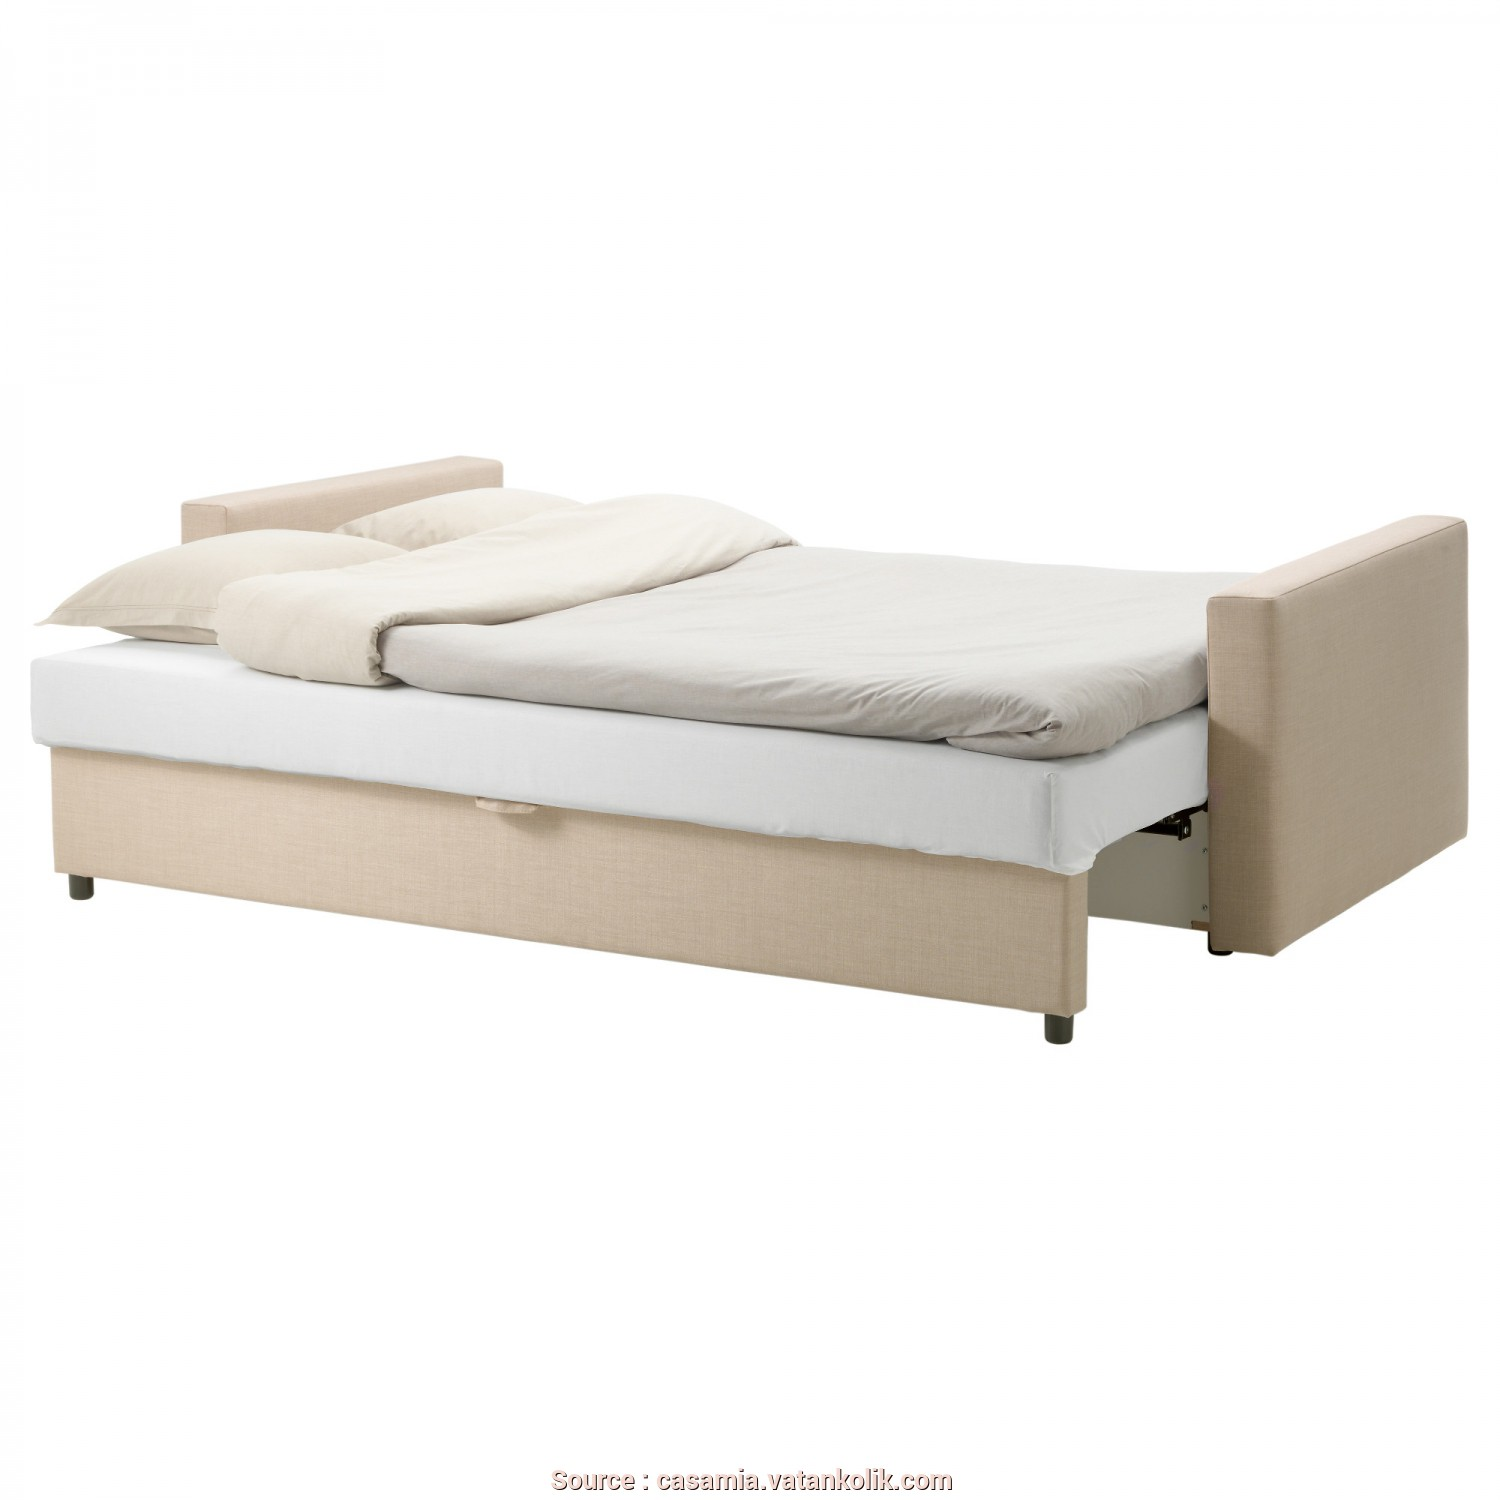 Montaggio Divano Ikea Friheten, Maestoso Brilliant Ikea Sleeper Sofa On Friheten Sleeper Sofa Skiftebo Beige